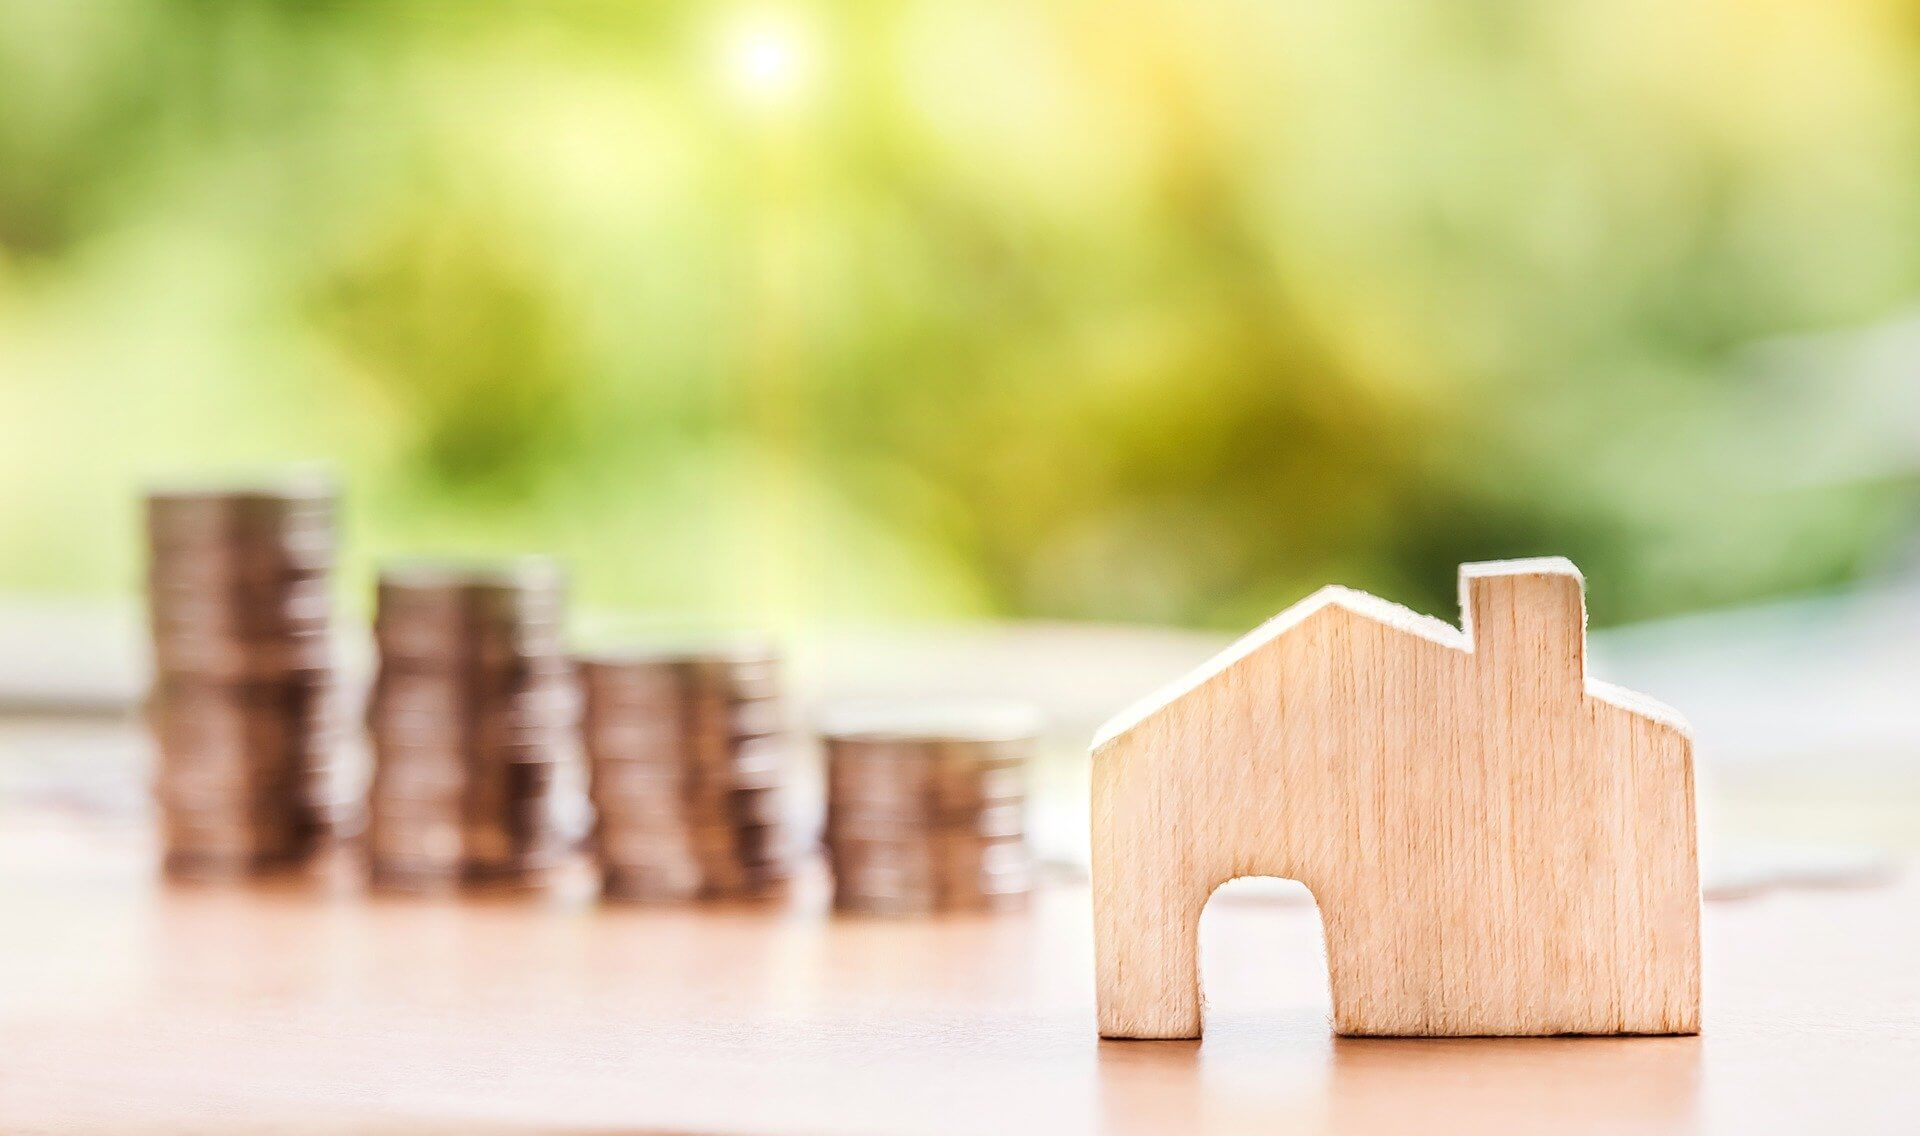 Here's why five different insurance companies will return five different home insurance quotes...for the same house.